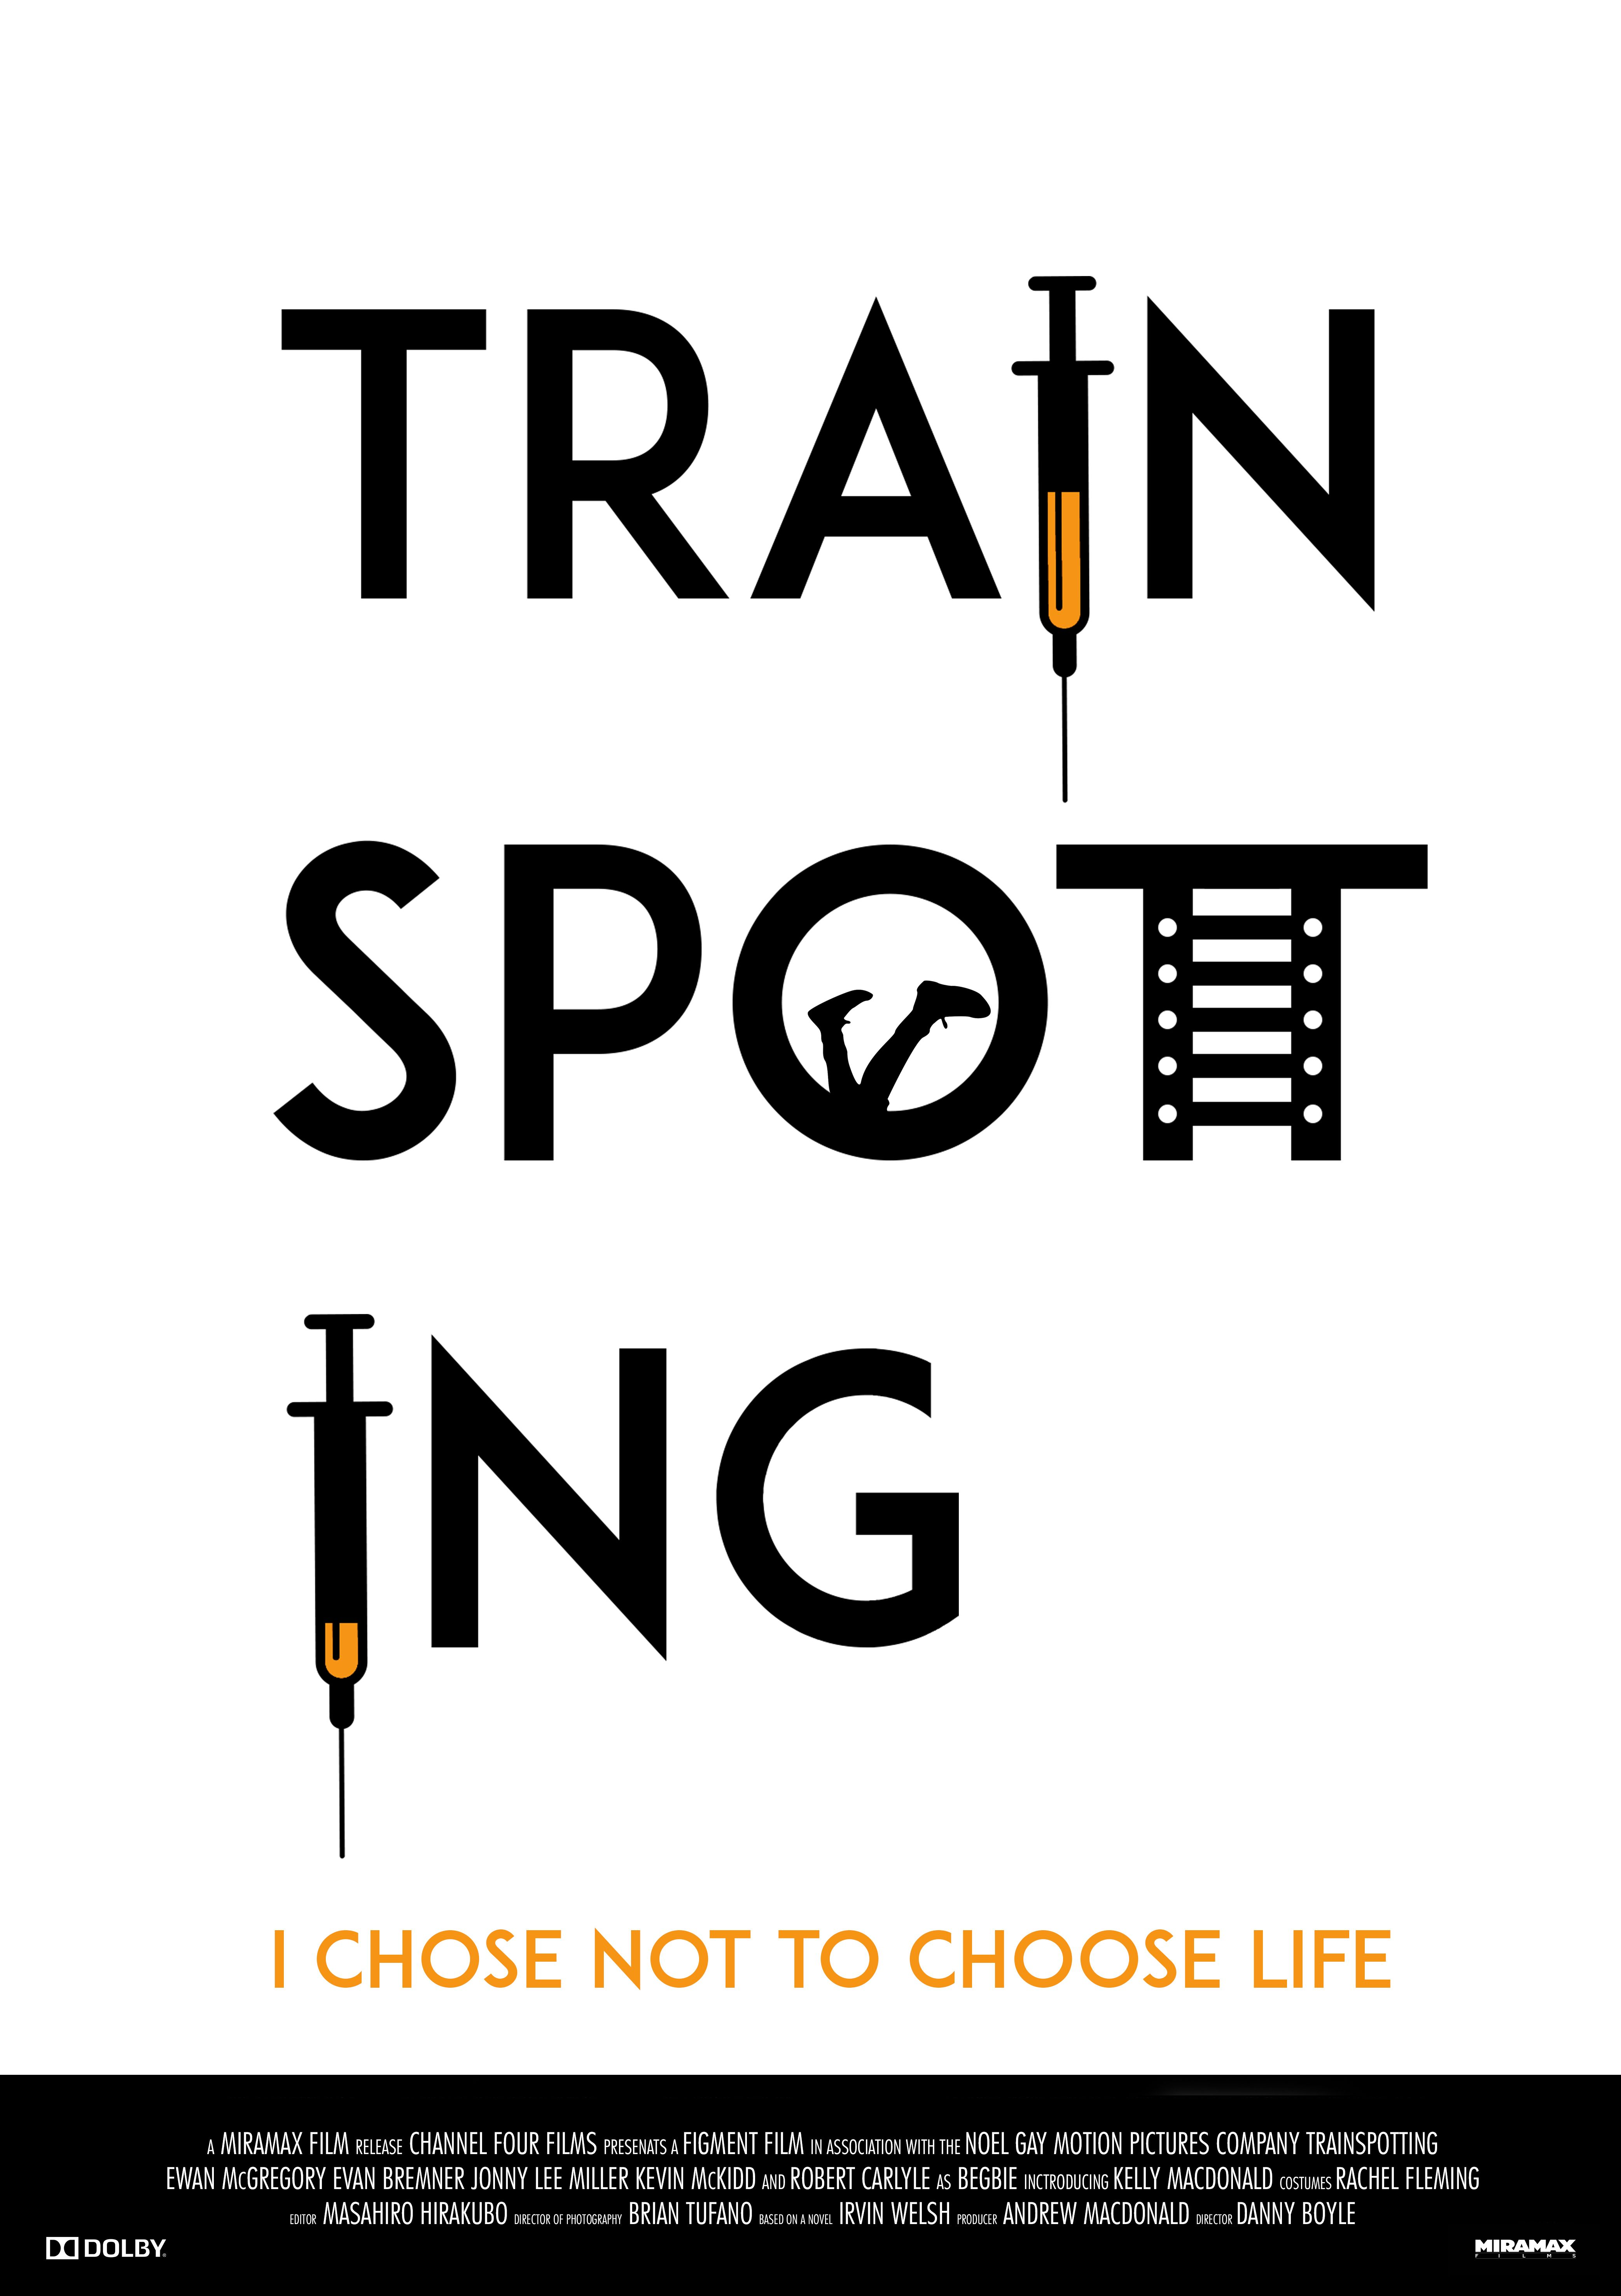 trainspotting poster redesign 2. | all and nothing in 2018 ...